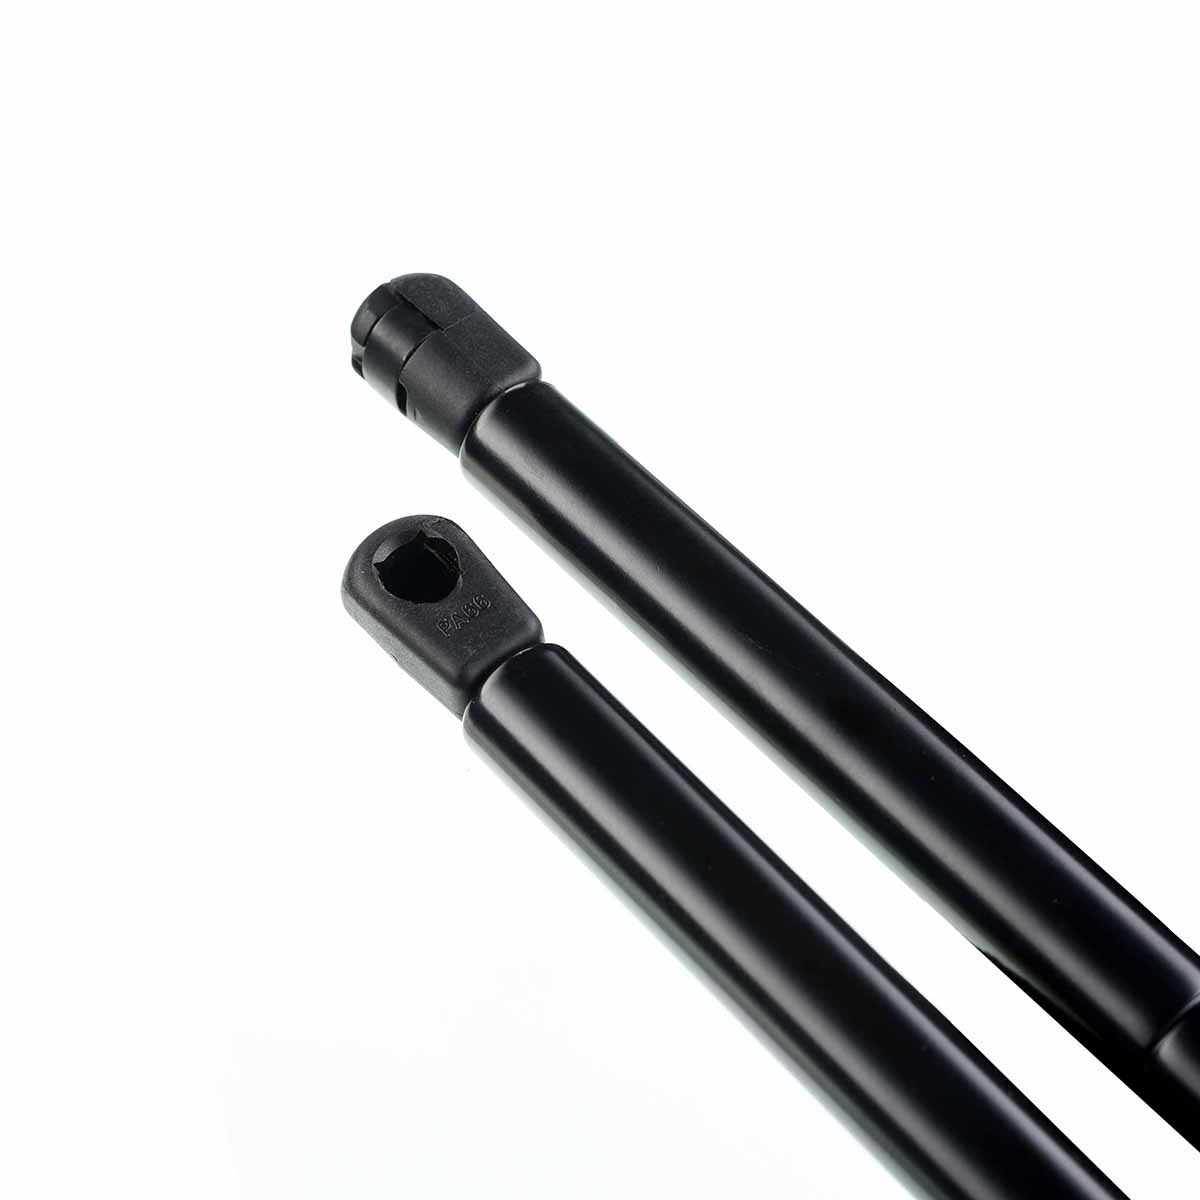 1998-2005 Volkswagen ARANA 2pcs PM2000 Trunk Lift Support Tailgate Shock Rear Strut Compatible with 1996-2002 Audi